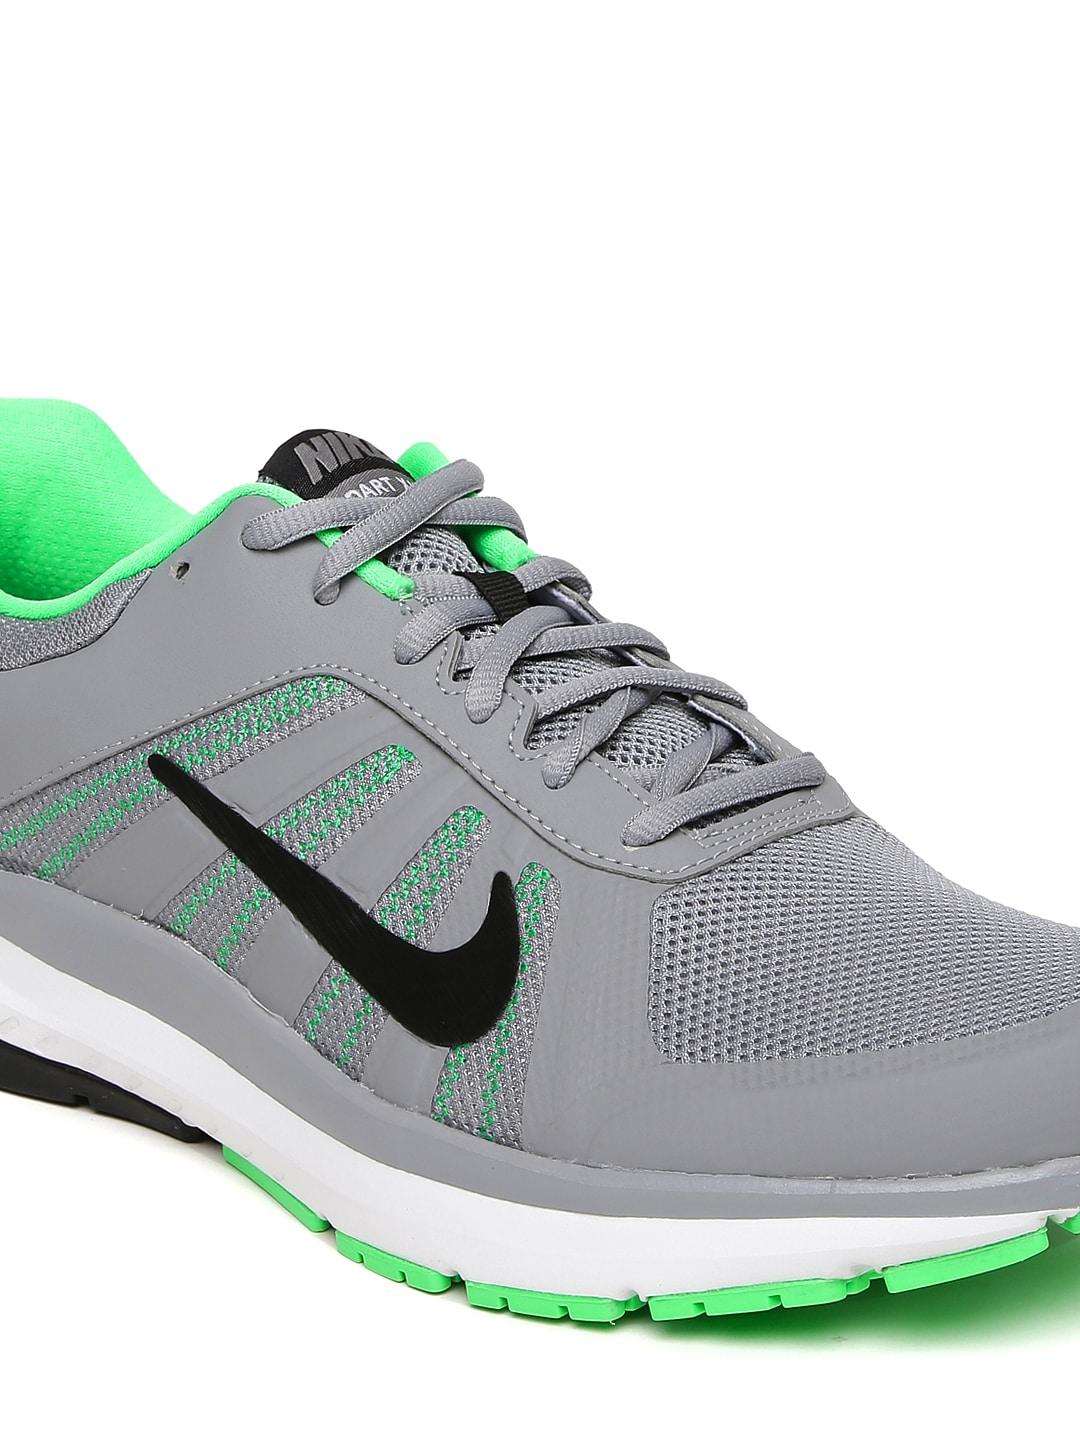 Best Range of Sports Shoes for Men at Lowest Price